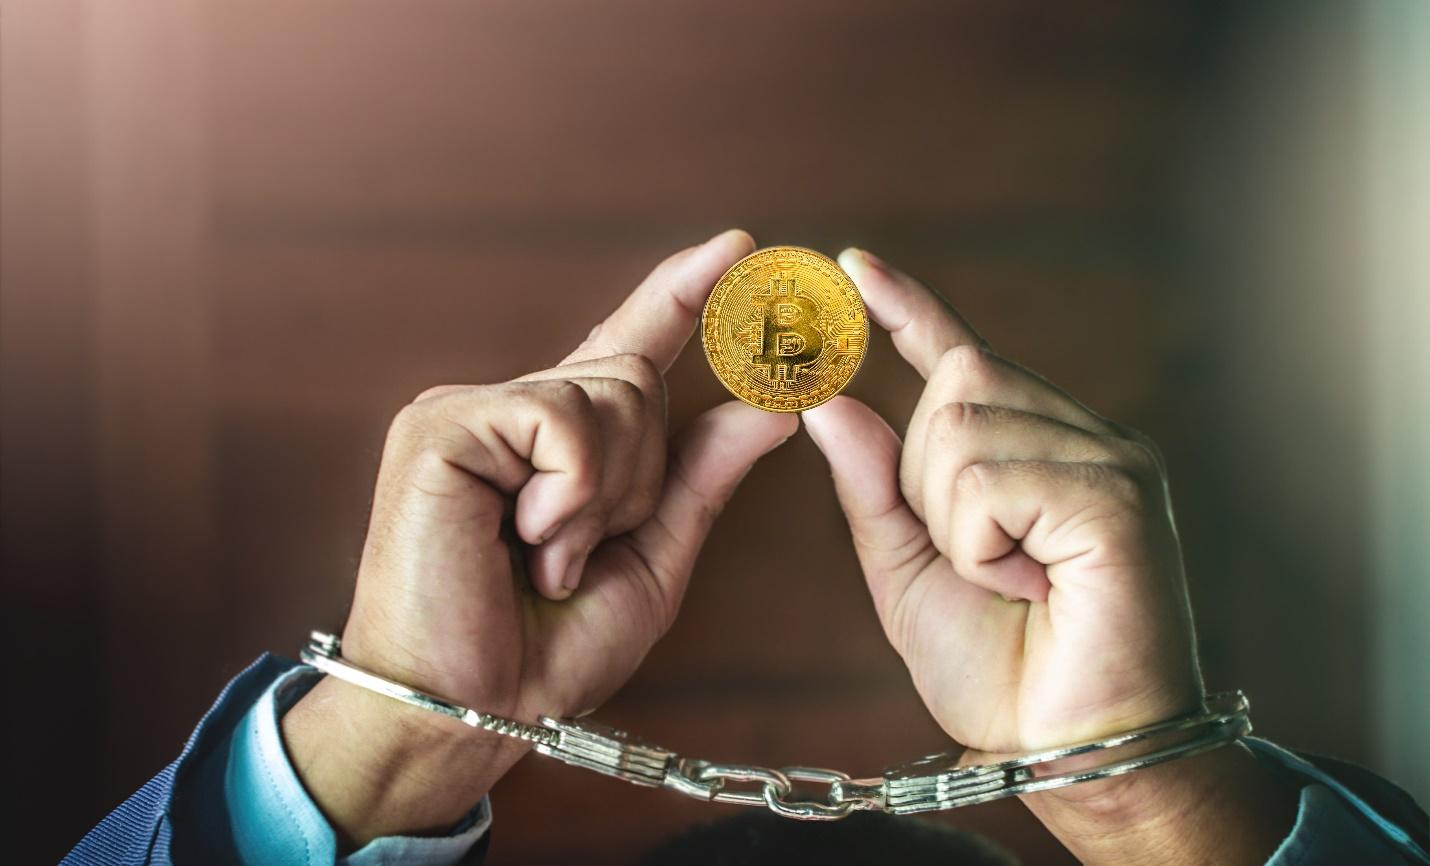 Edward Snowden: Bitcoin is Freedom Because It's Permissionless